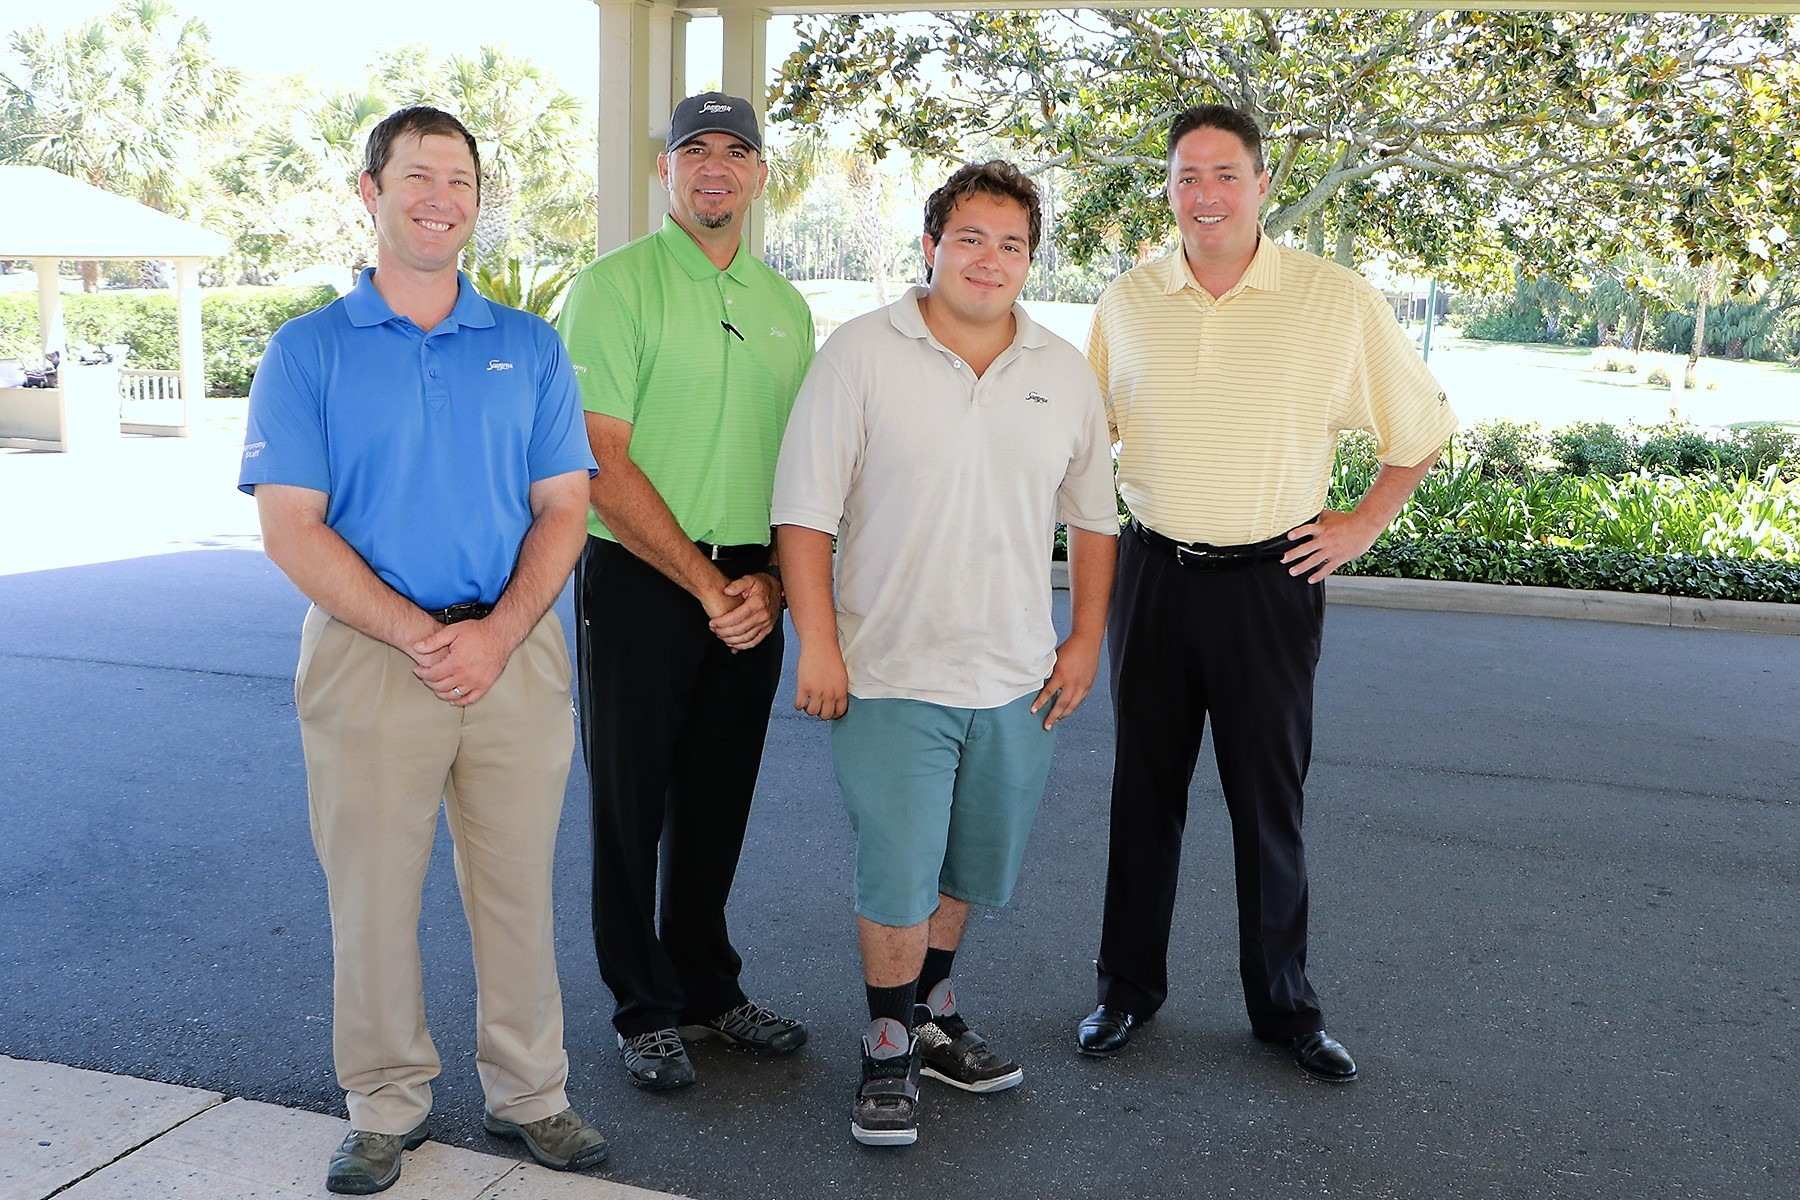 Sawgrass Country Club Golf Course Superintendent Bill Schmidt, Director of Agronomy Matt Durkee, scholarship recipient Emilio Mirabilio and General Manager Barry McDonald